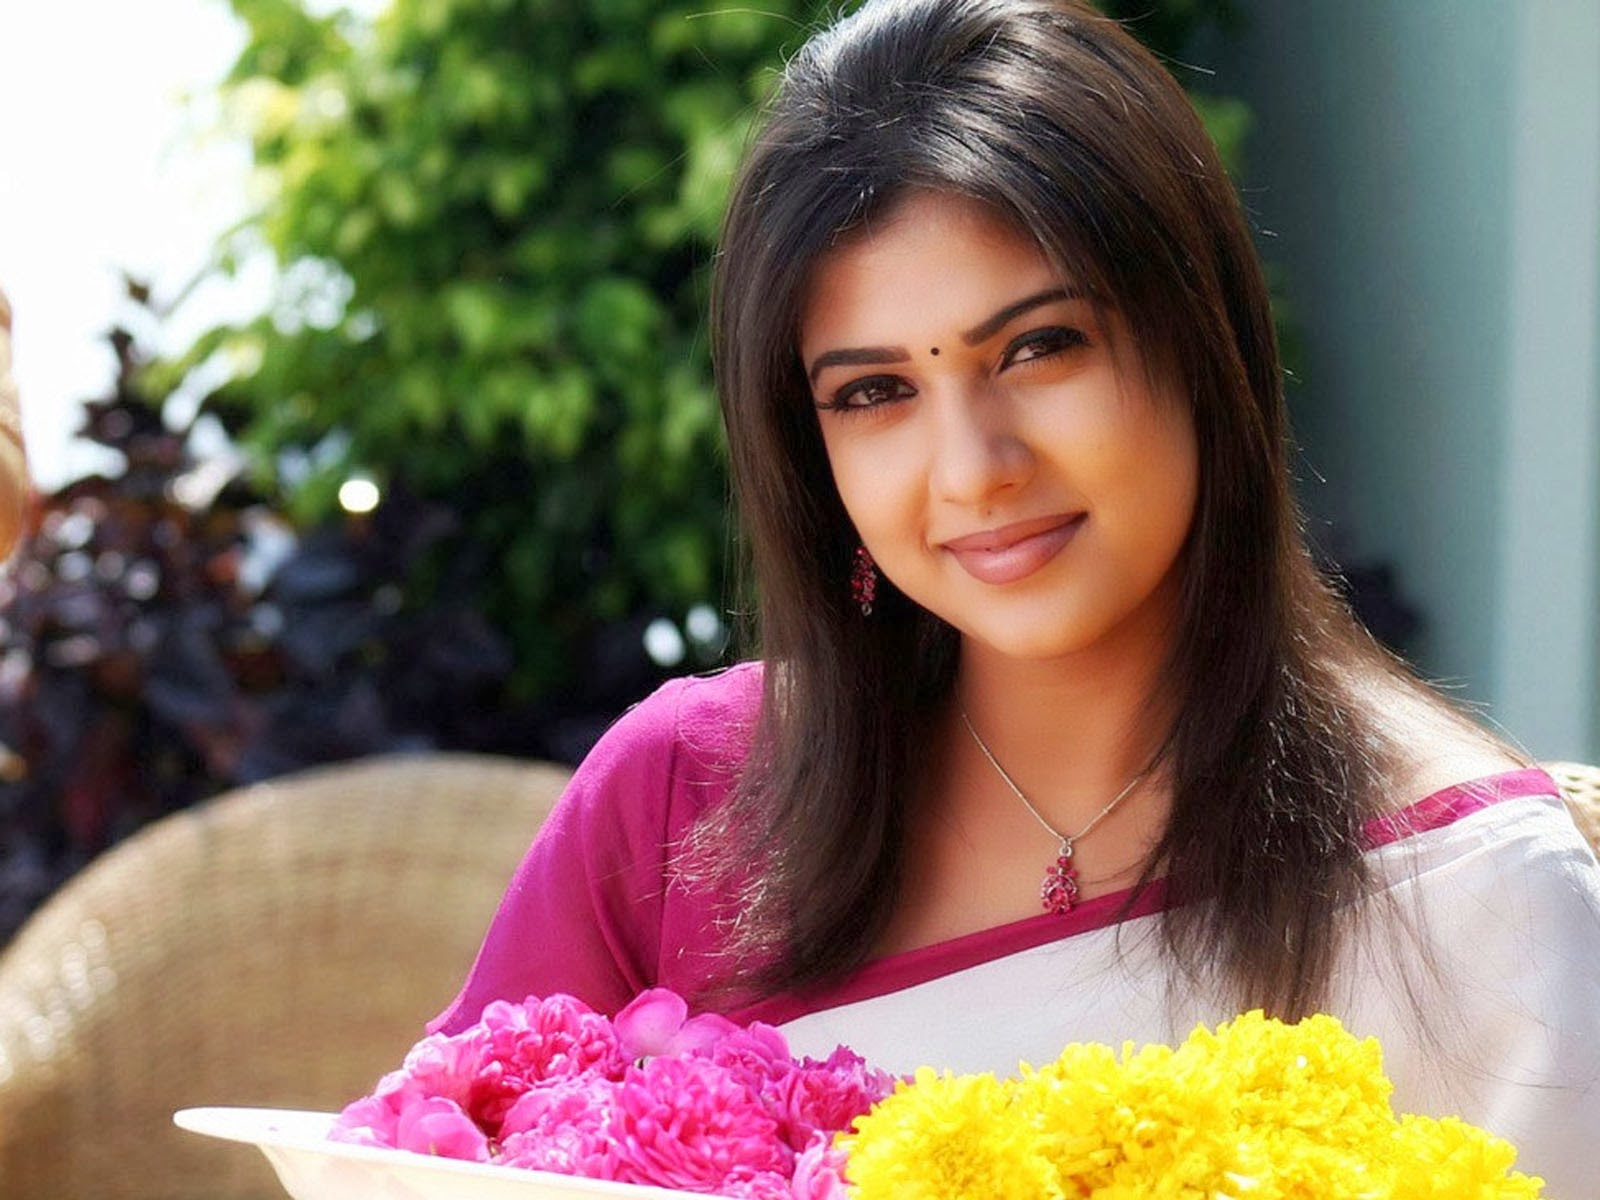 Nayanthara Hd Images 25 Cute Pictures: Nayanthara Wallpapers High Resolution And Quality Download